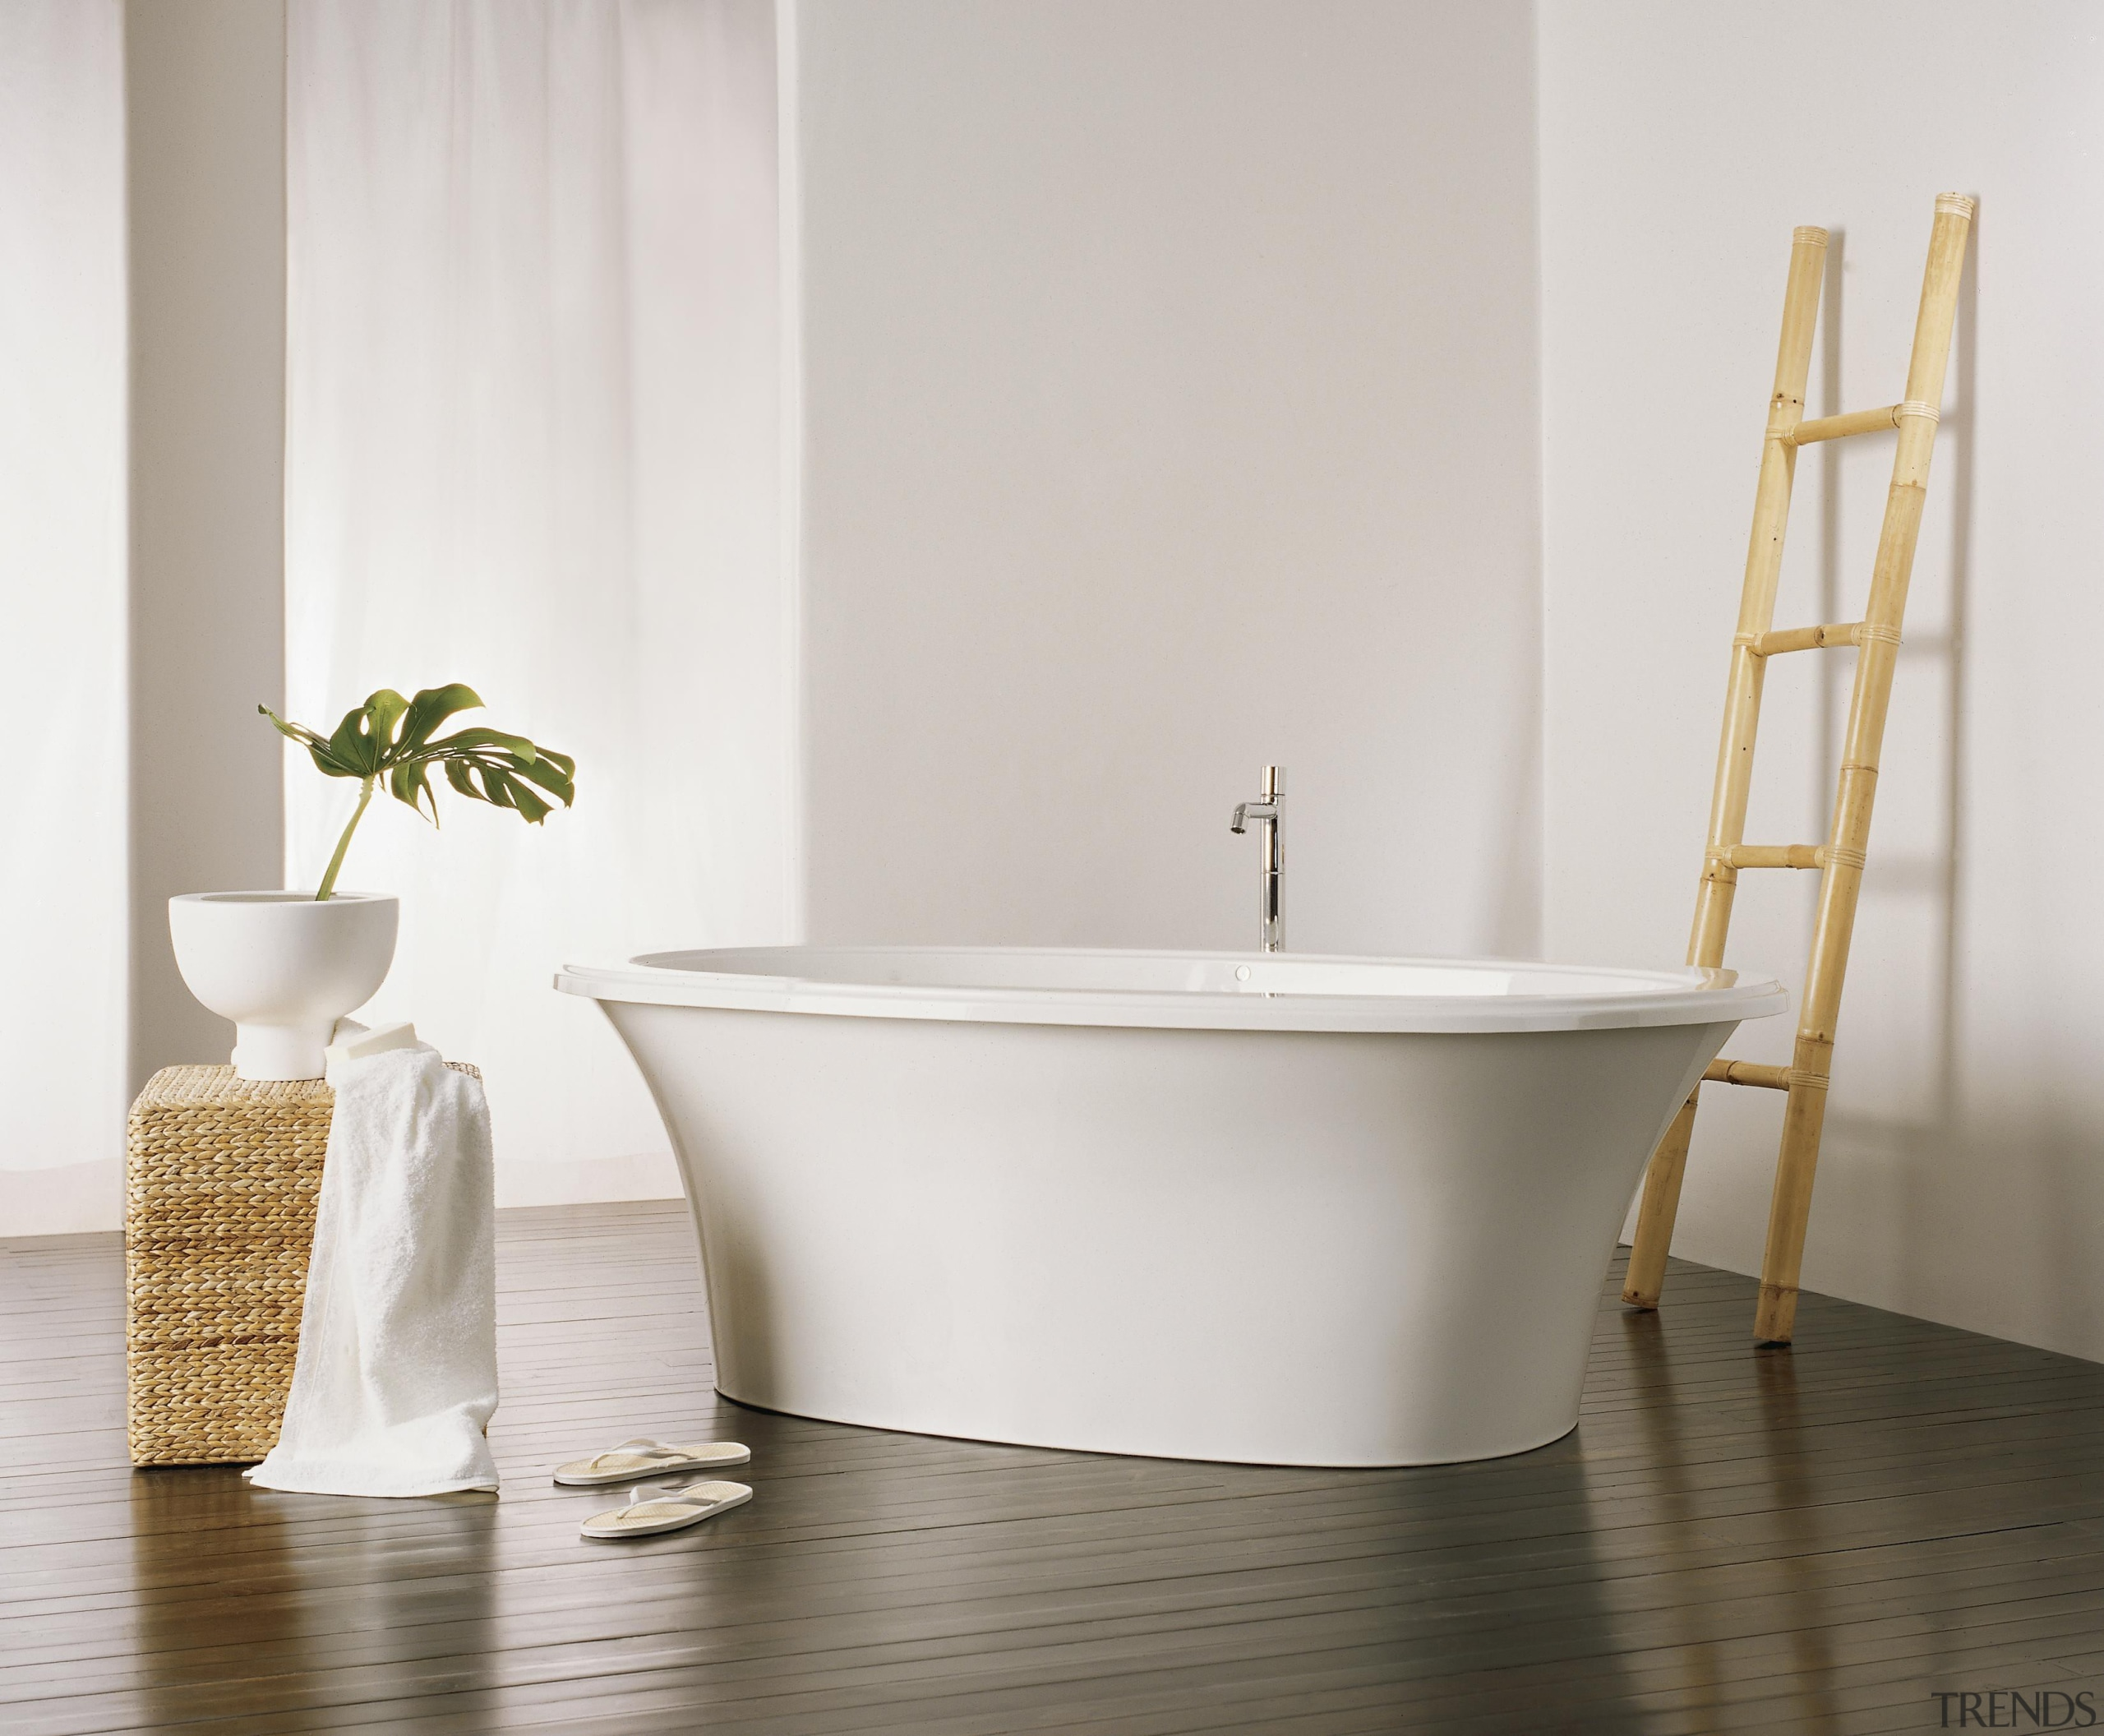 balneo sanos 7240.jpg - balneo_sanos_7240.jpg - bathroom | bathroom, bathroom cabinet, bathroom sink, bathtub, ceramic, interior design, plumbing fixture, product, product design, sink, tap, toilet seat, white